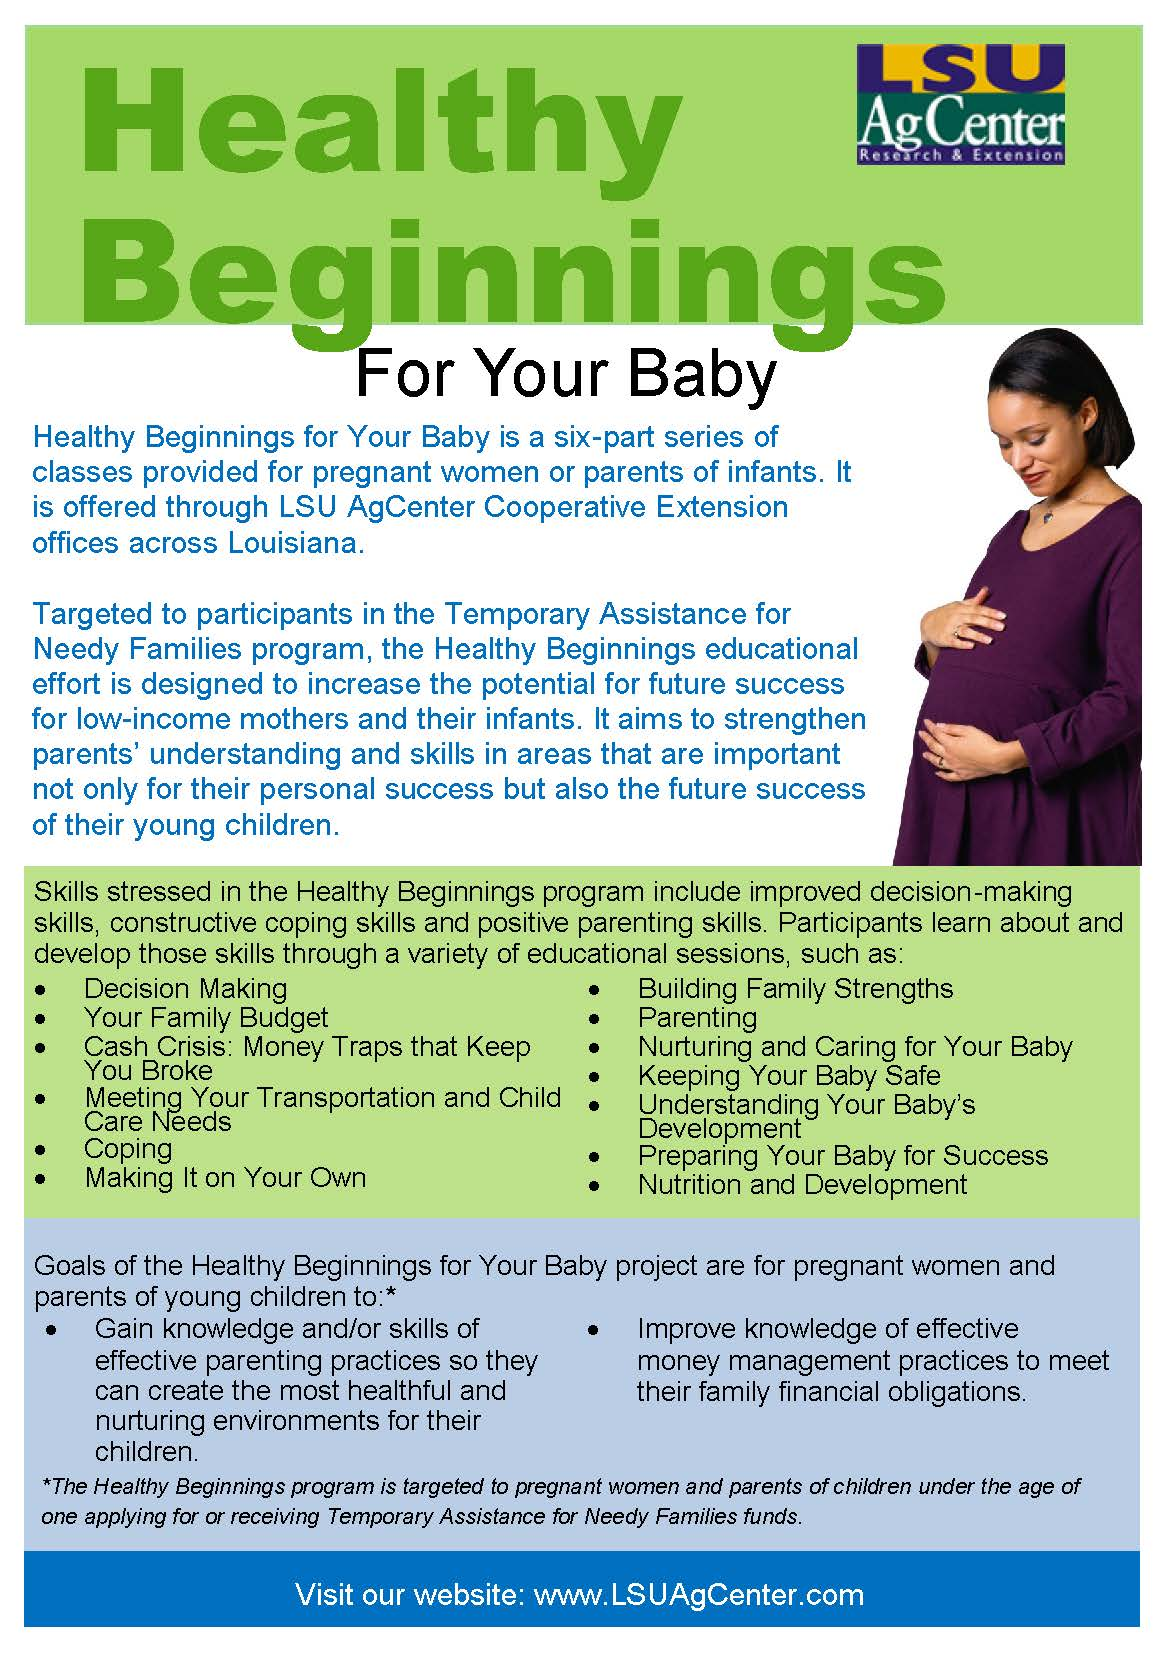 Healthy Beginnings Infographic Final_Page_1.jpg thumbnail